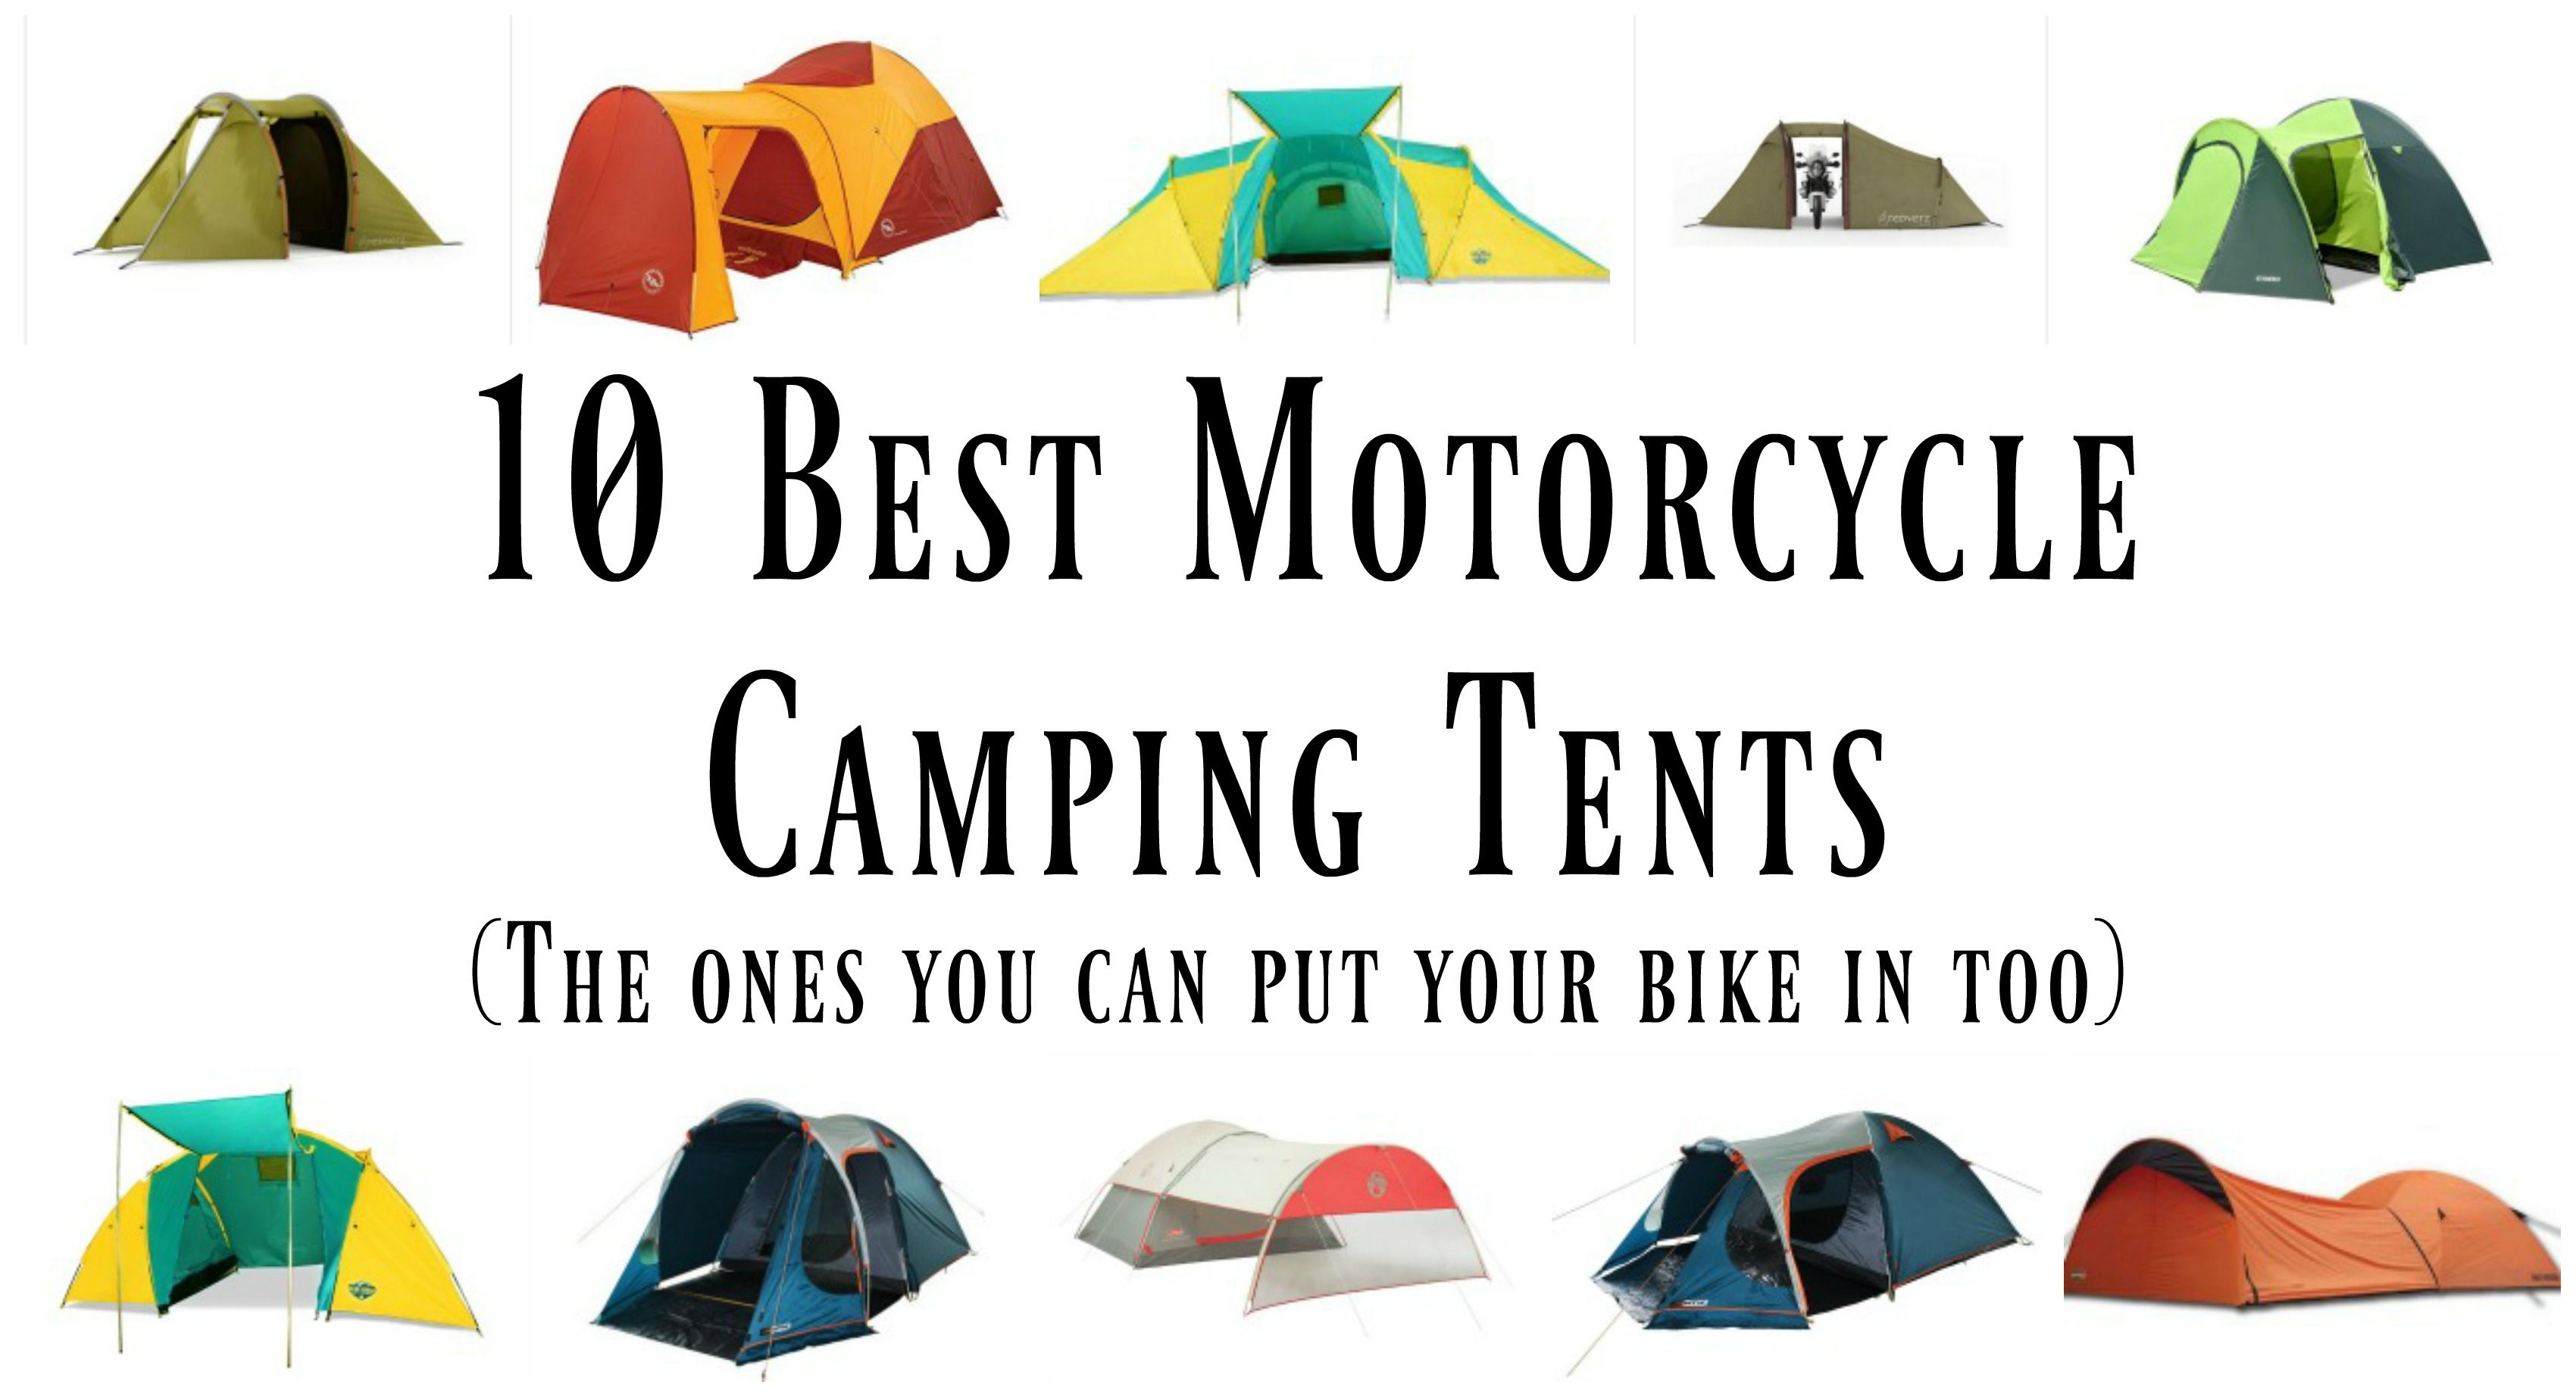 10 Best Motorcycle C&ing Tents (The ones you can put your bike in too)  sc 1 st  Pinterest & Ten Best Motorcycle Camping Tents for 2017 | Tents Motorcycle ...